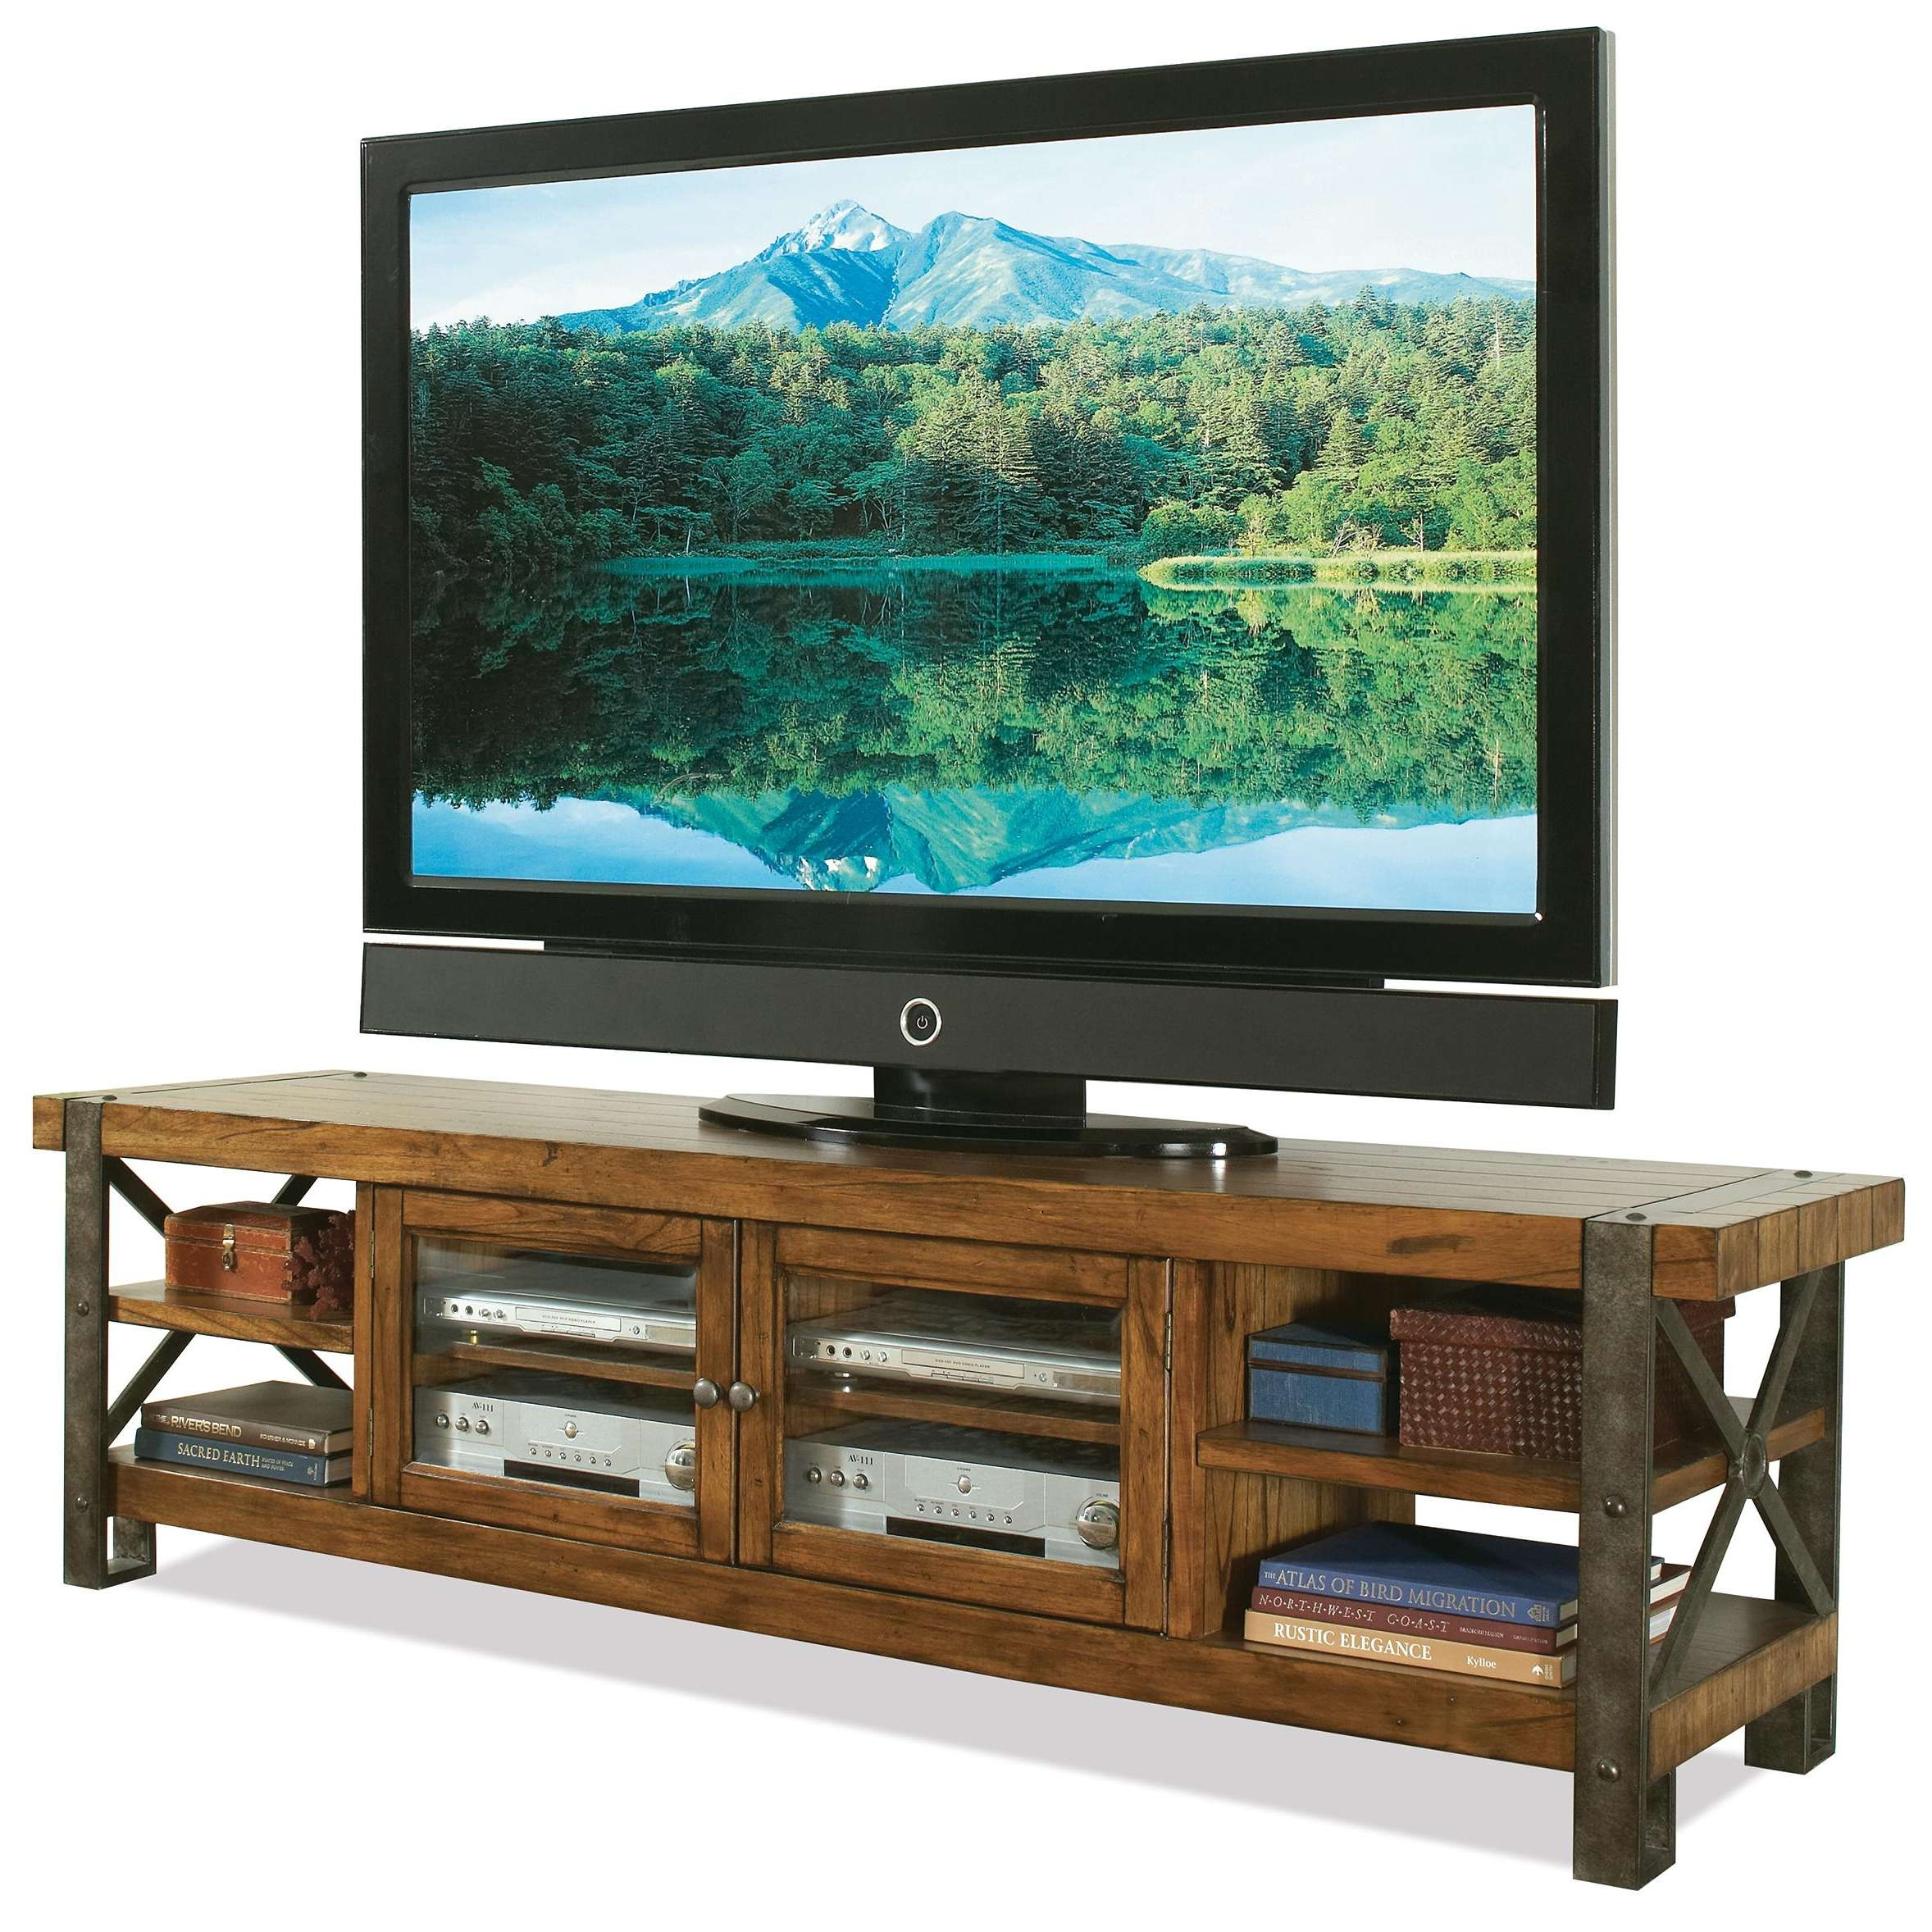 Tv : Special Rustic Wood Tv Stand Beautiful Rustic Tv Cabinets 12 With Regard To Rustic Pine Tv Cabinets (View 19 of 20)